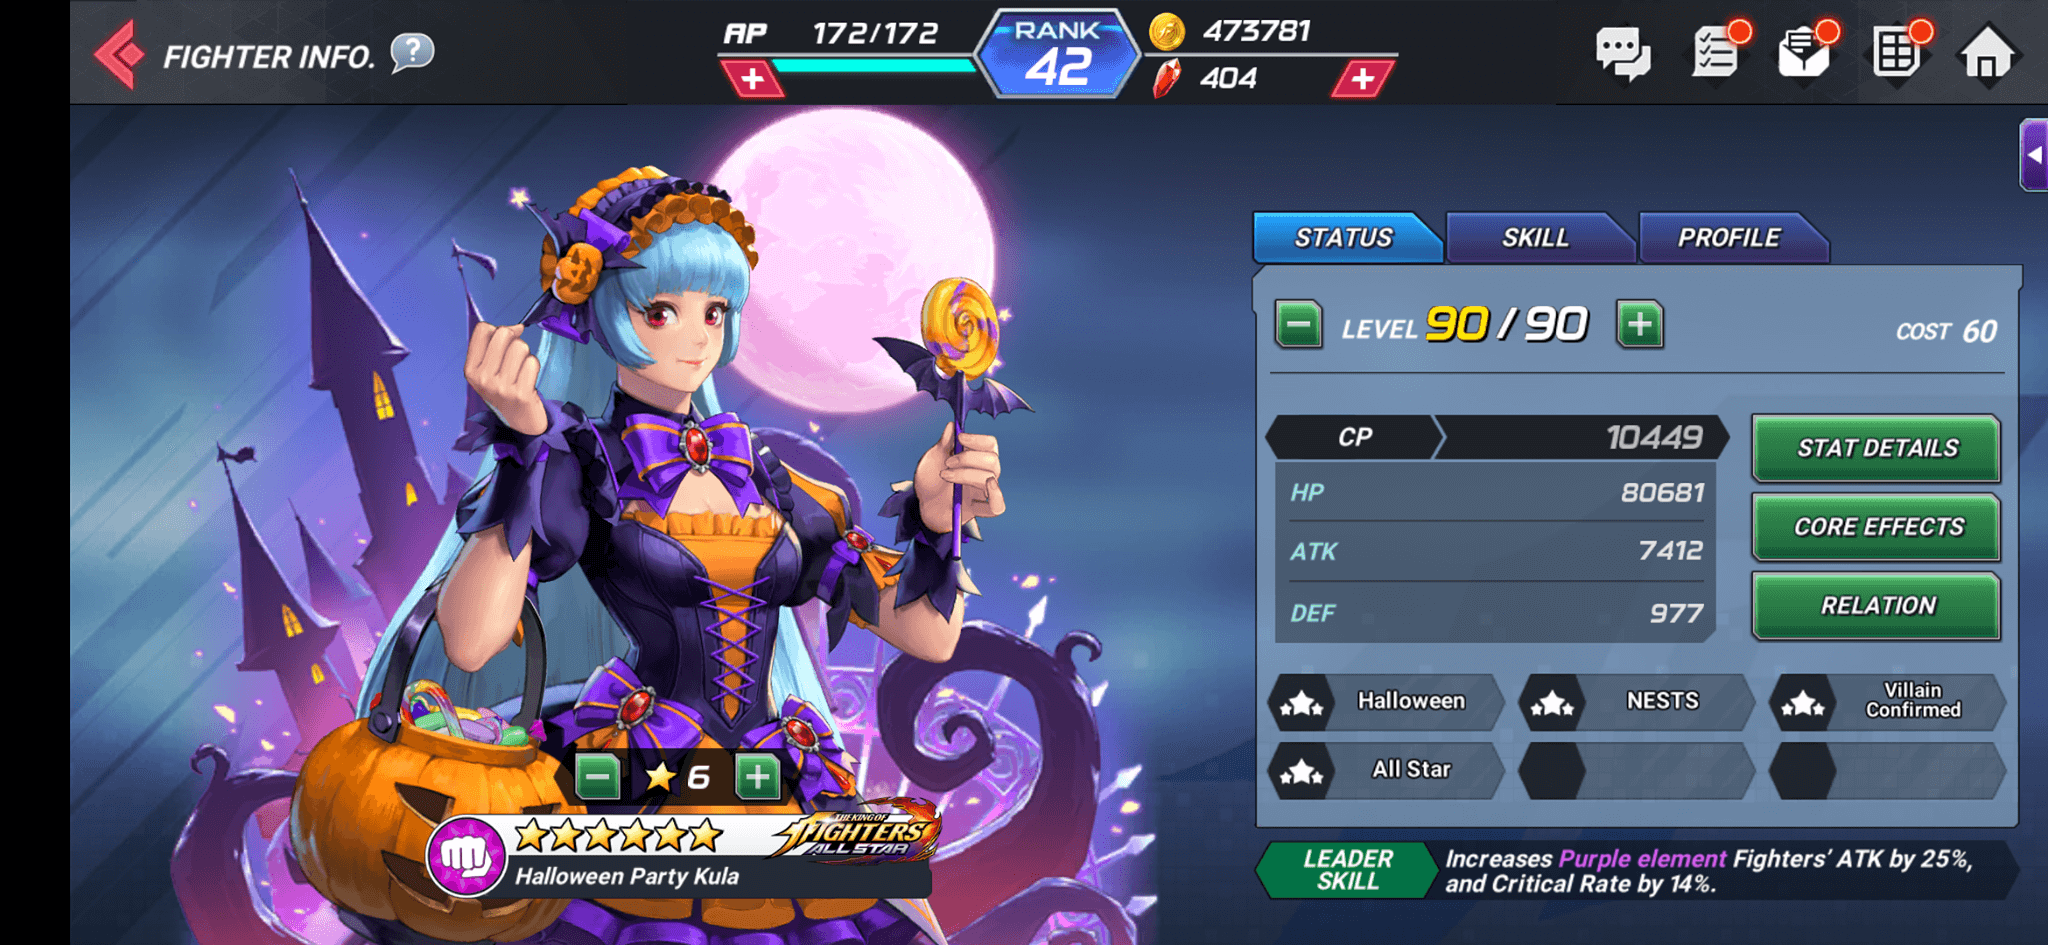 King Of Fighters Allstar Halloween Party Should You Summon